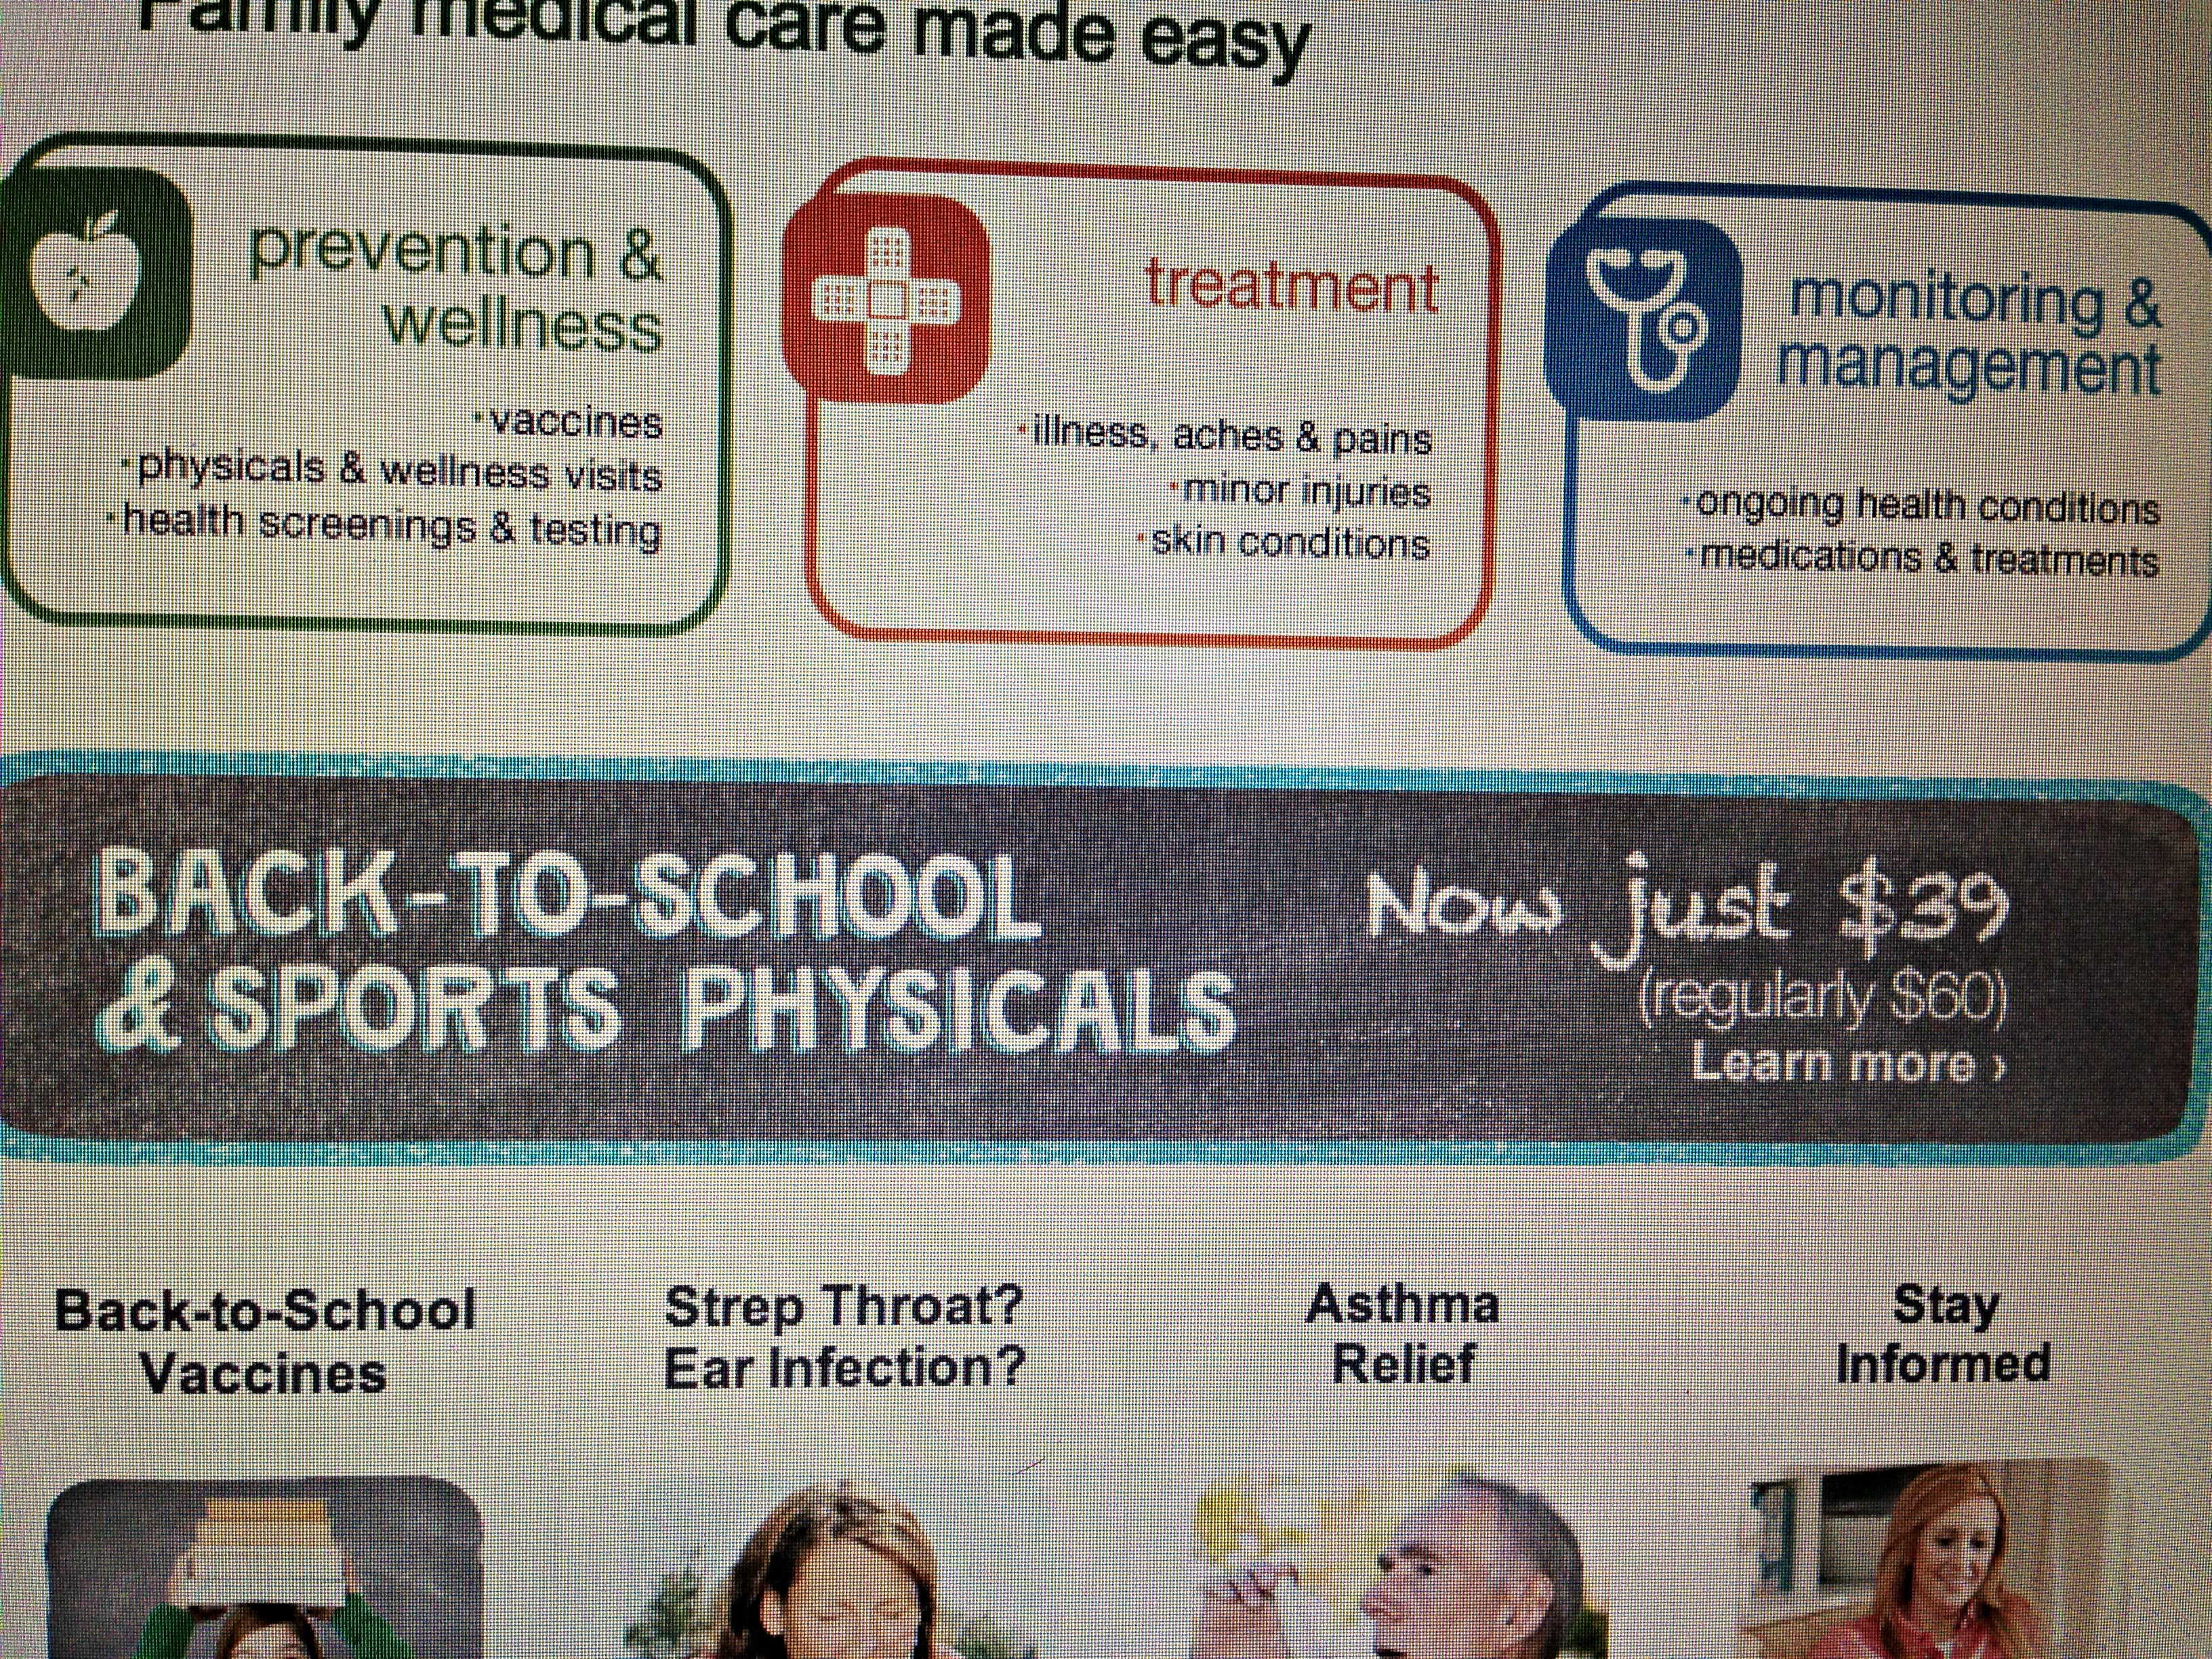 Walgreens Healthcare Clinic Offers Back-To-School Physicals!